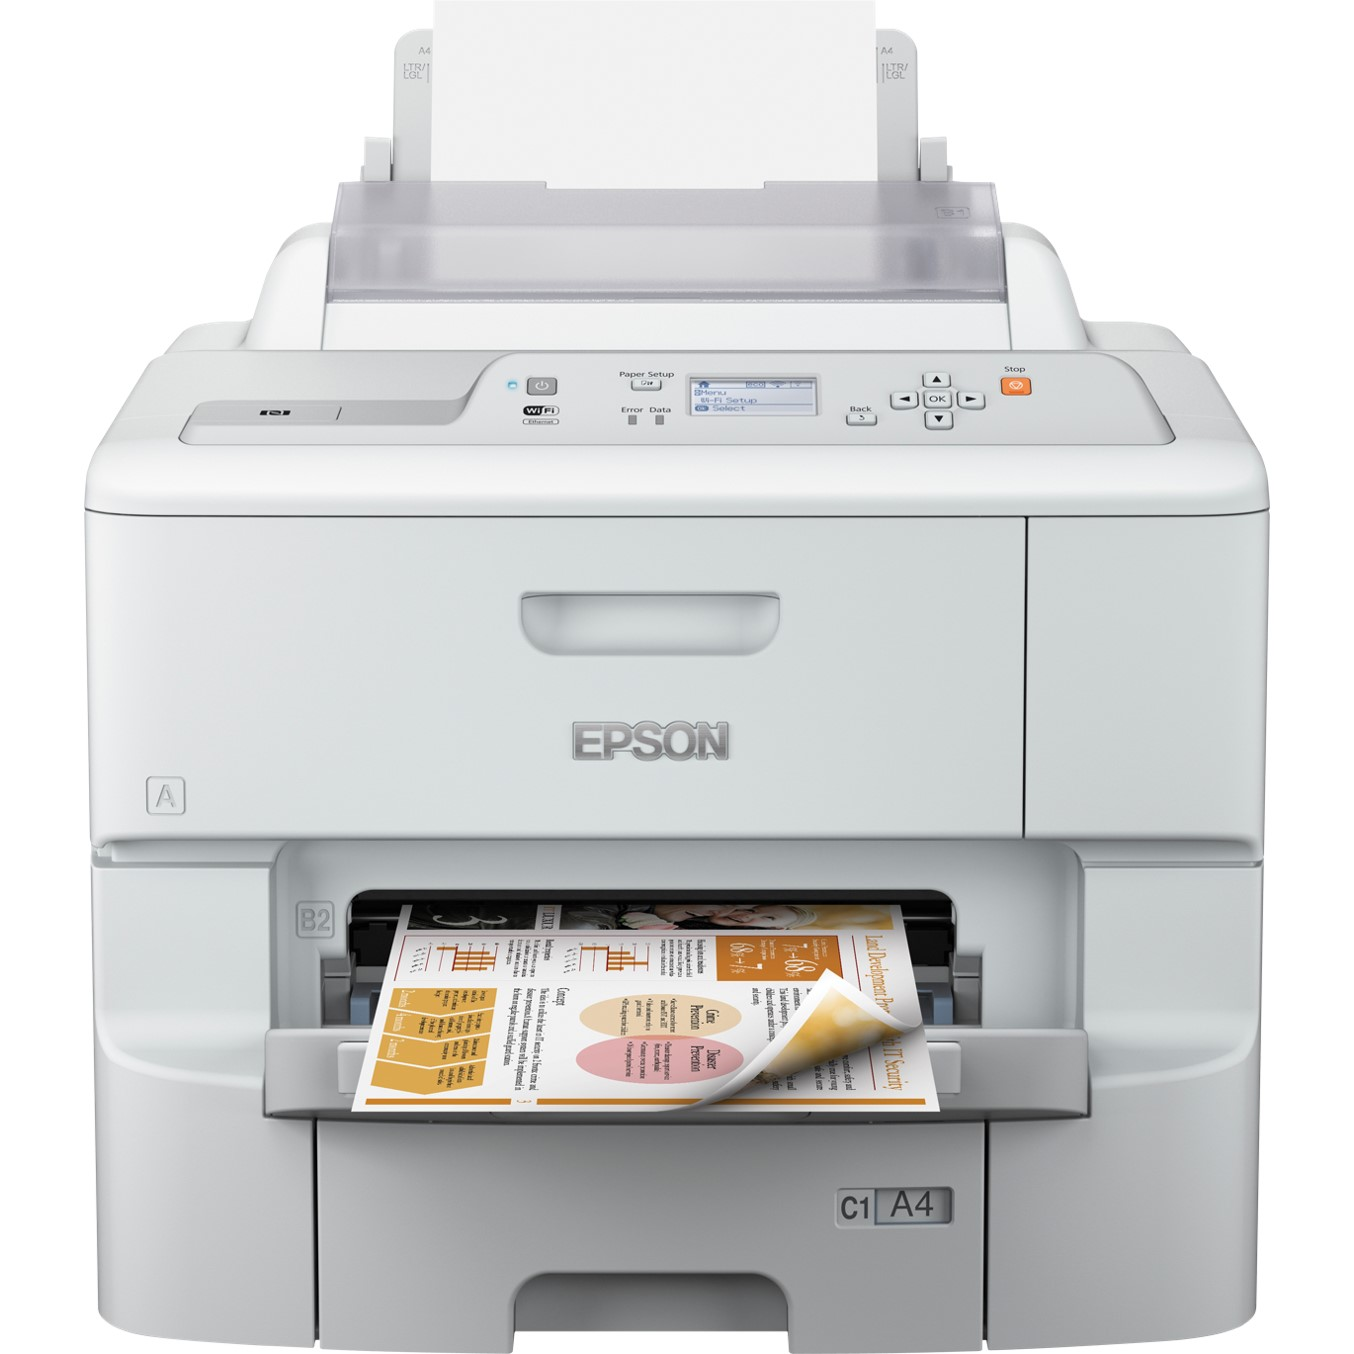 IMPRESORA EPSON INYECCION COLOR WF-6090DW WORKFORCE PRO A4- 34PPM- USB- RED- WIFI- WIFI DIRECT- DUPLEX IMPRESION